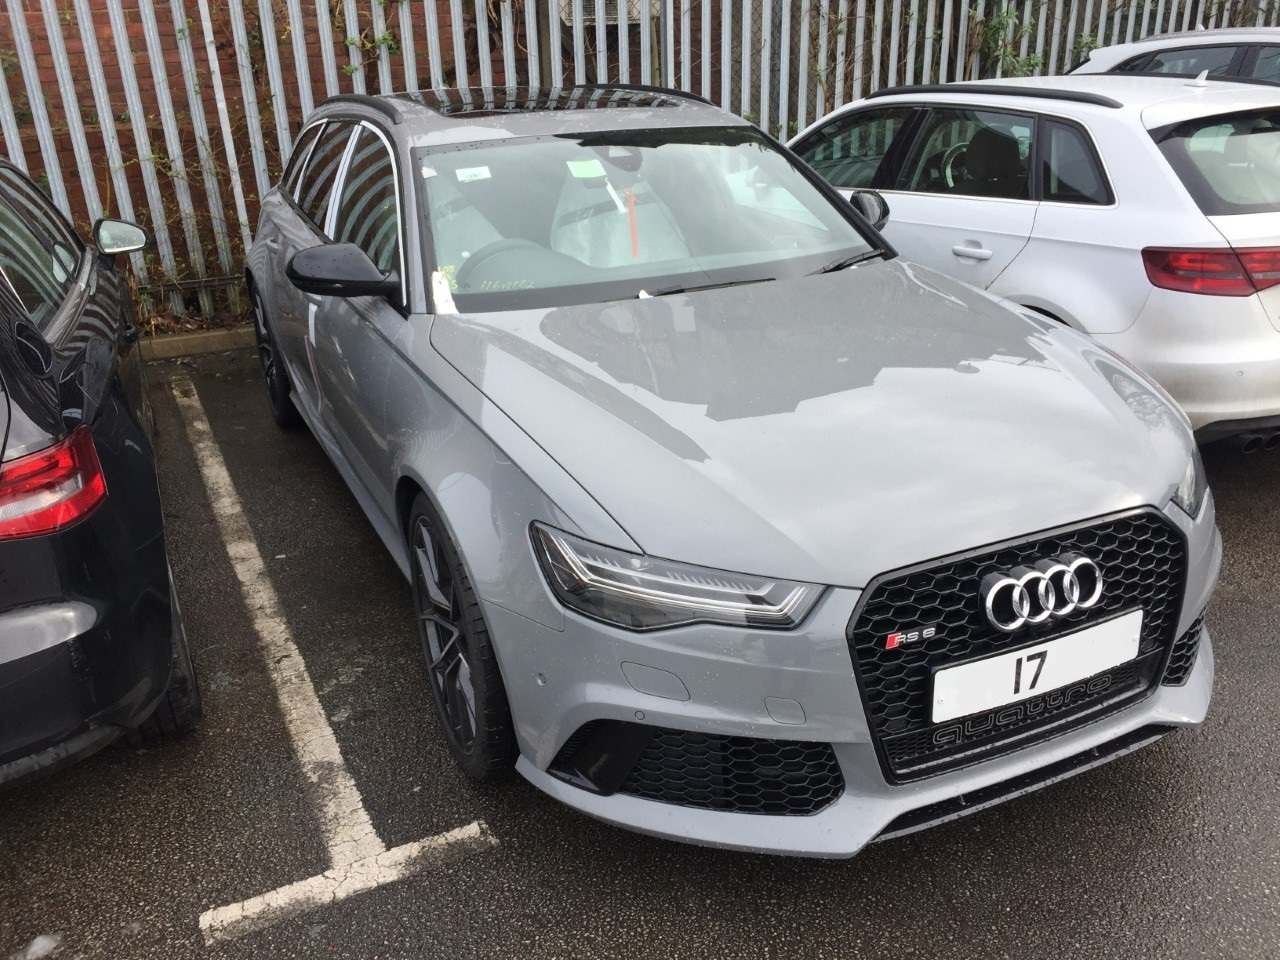 Gallery Audi RS Thatcham Category Car Tracking Device - Audi car tracker